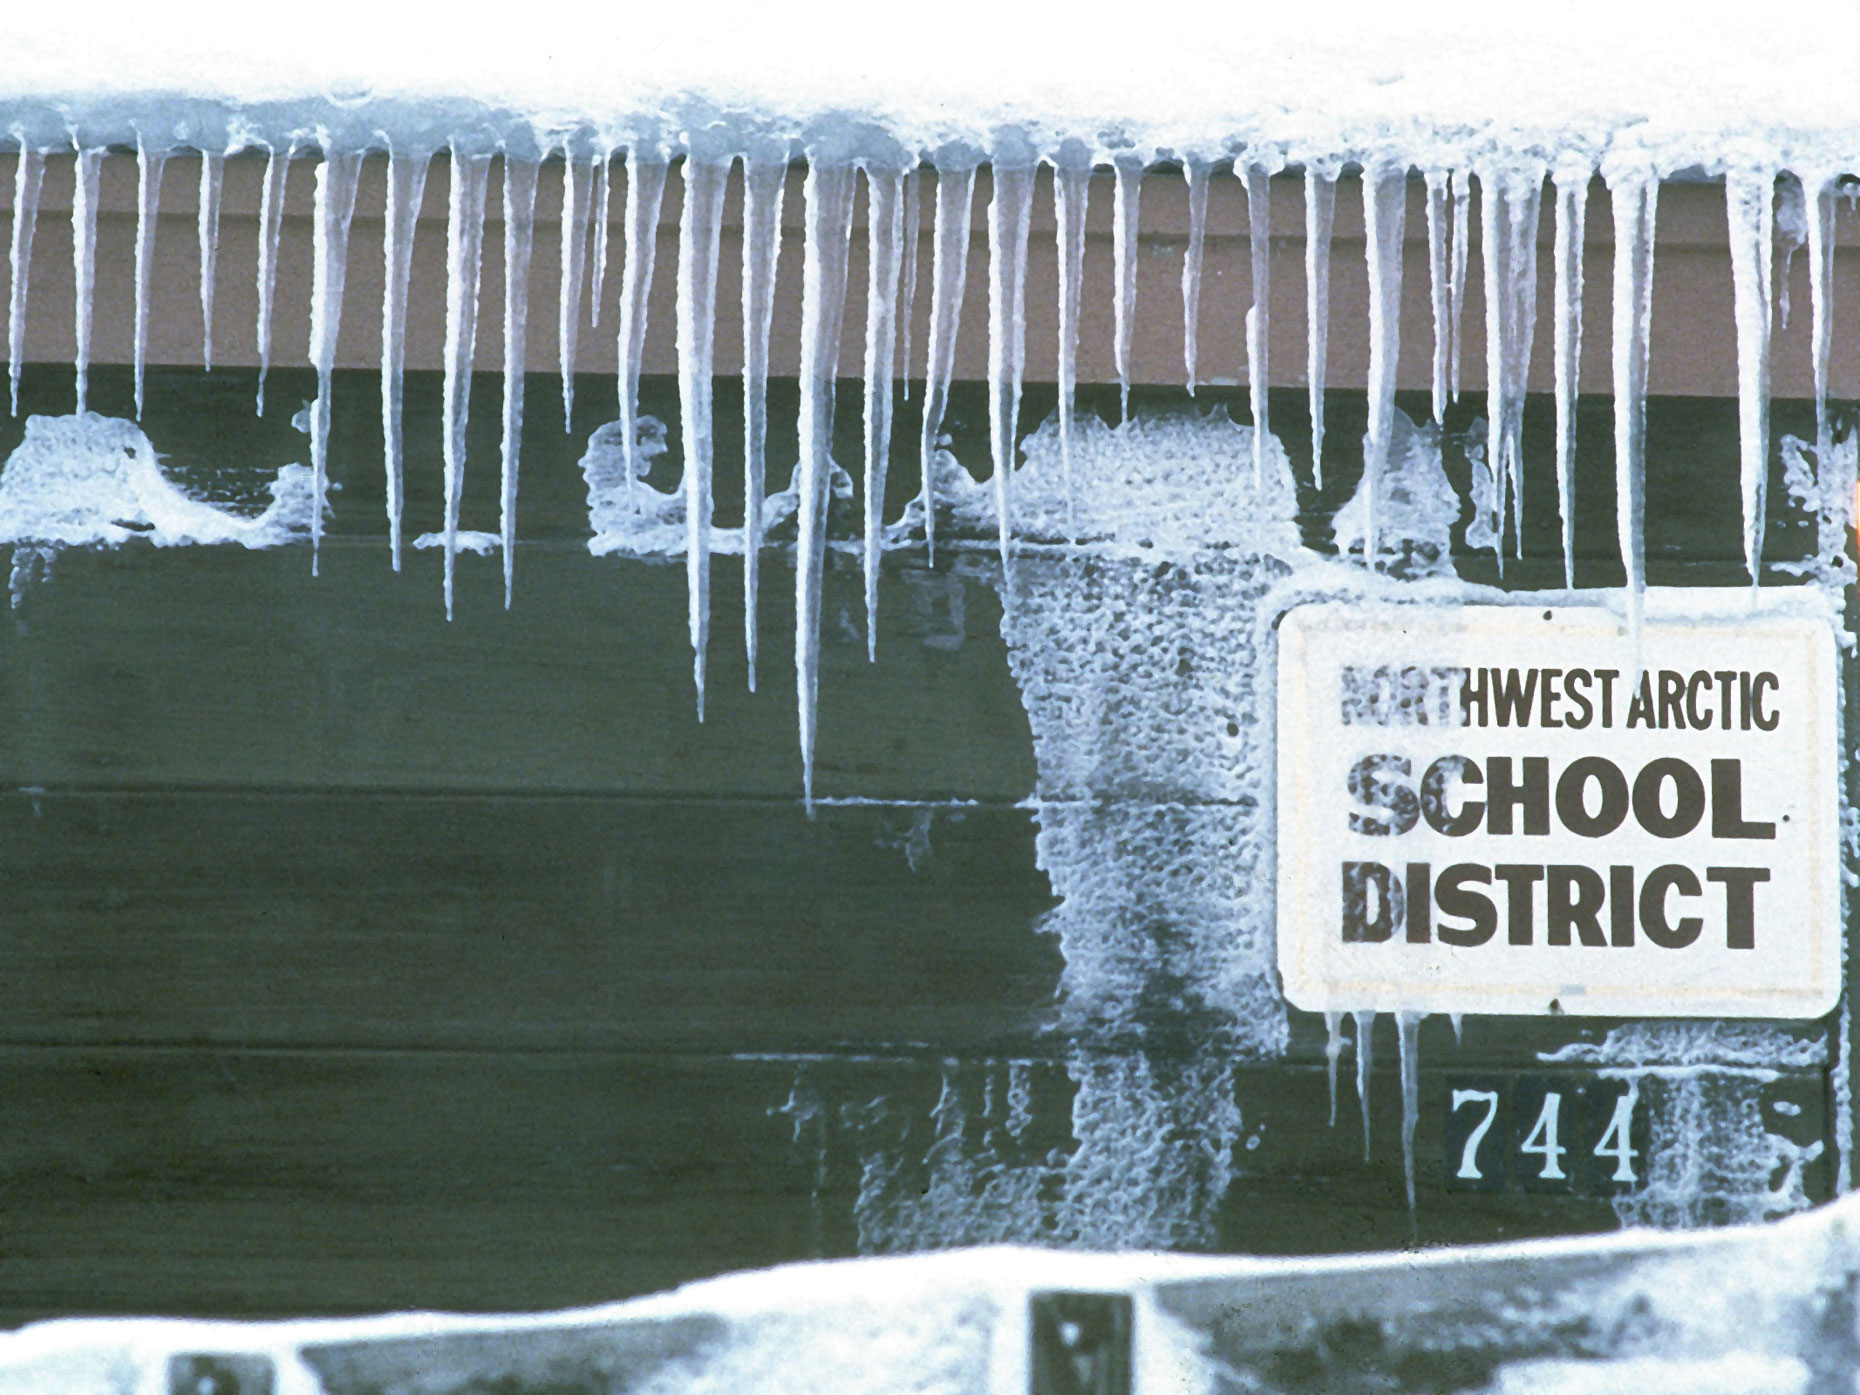 The Northwest Arctic School District is covered in icicles.